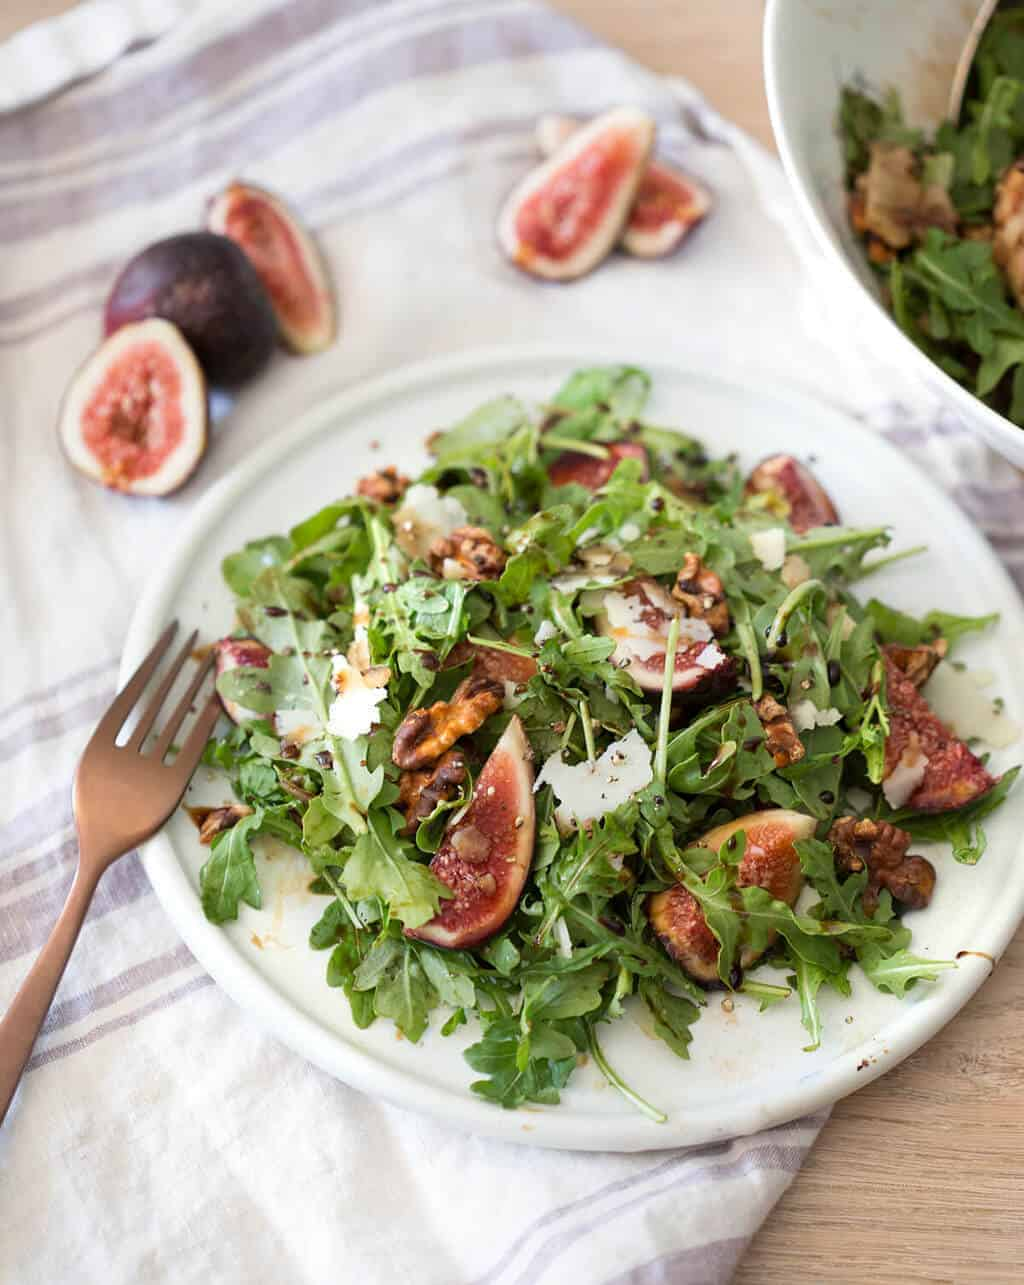 A photo of a fig and walnut salad on a plate ready to be served.